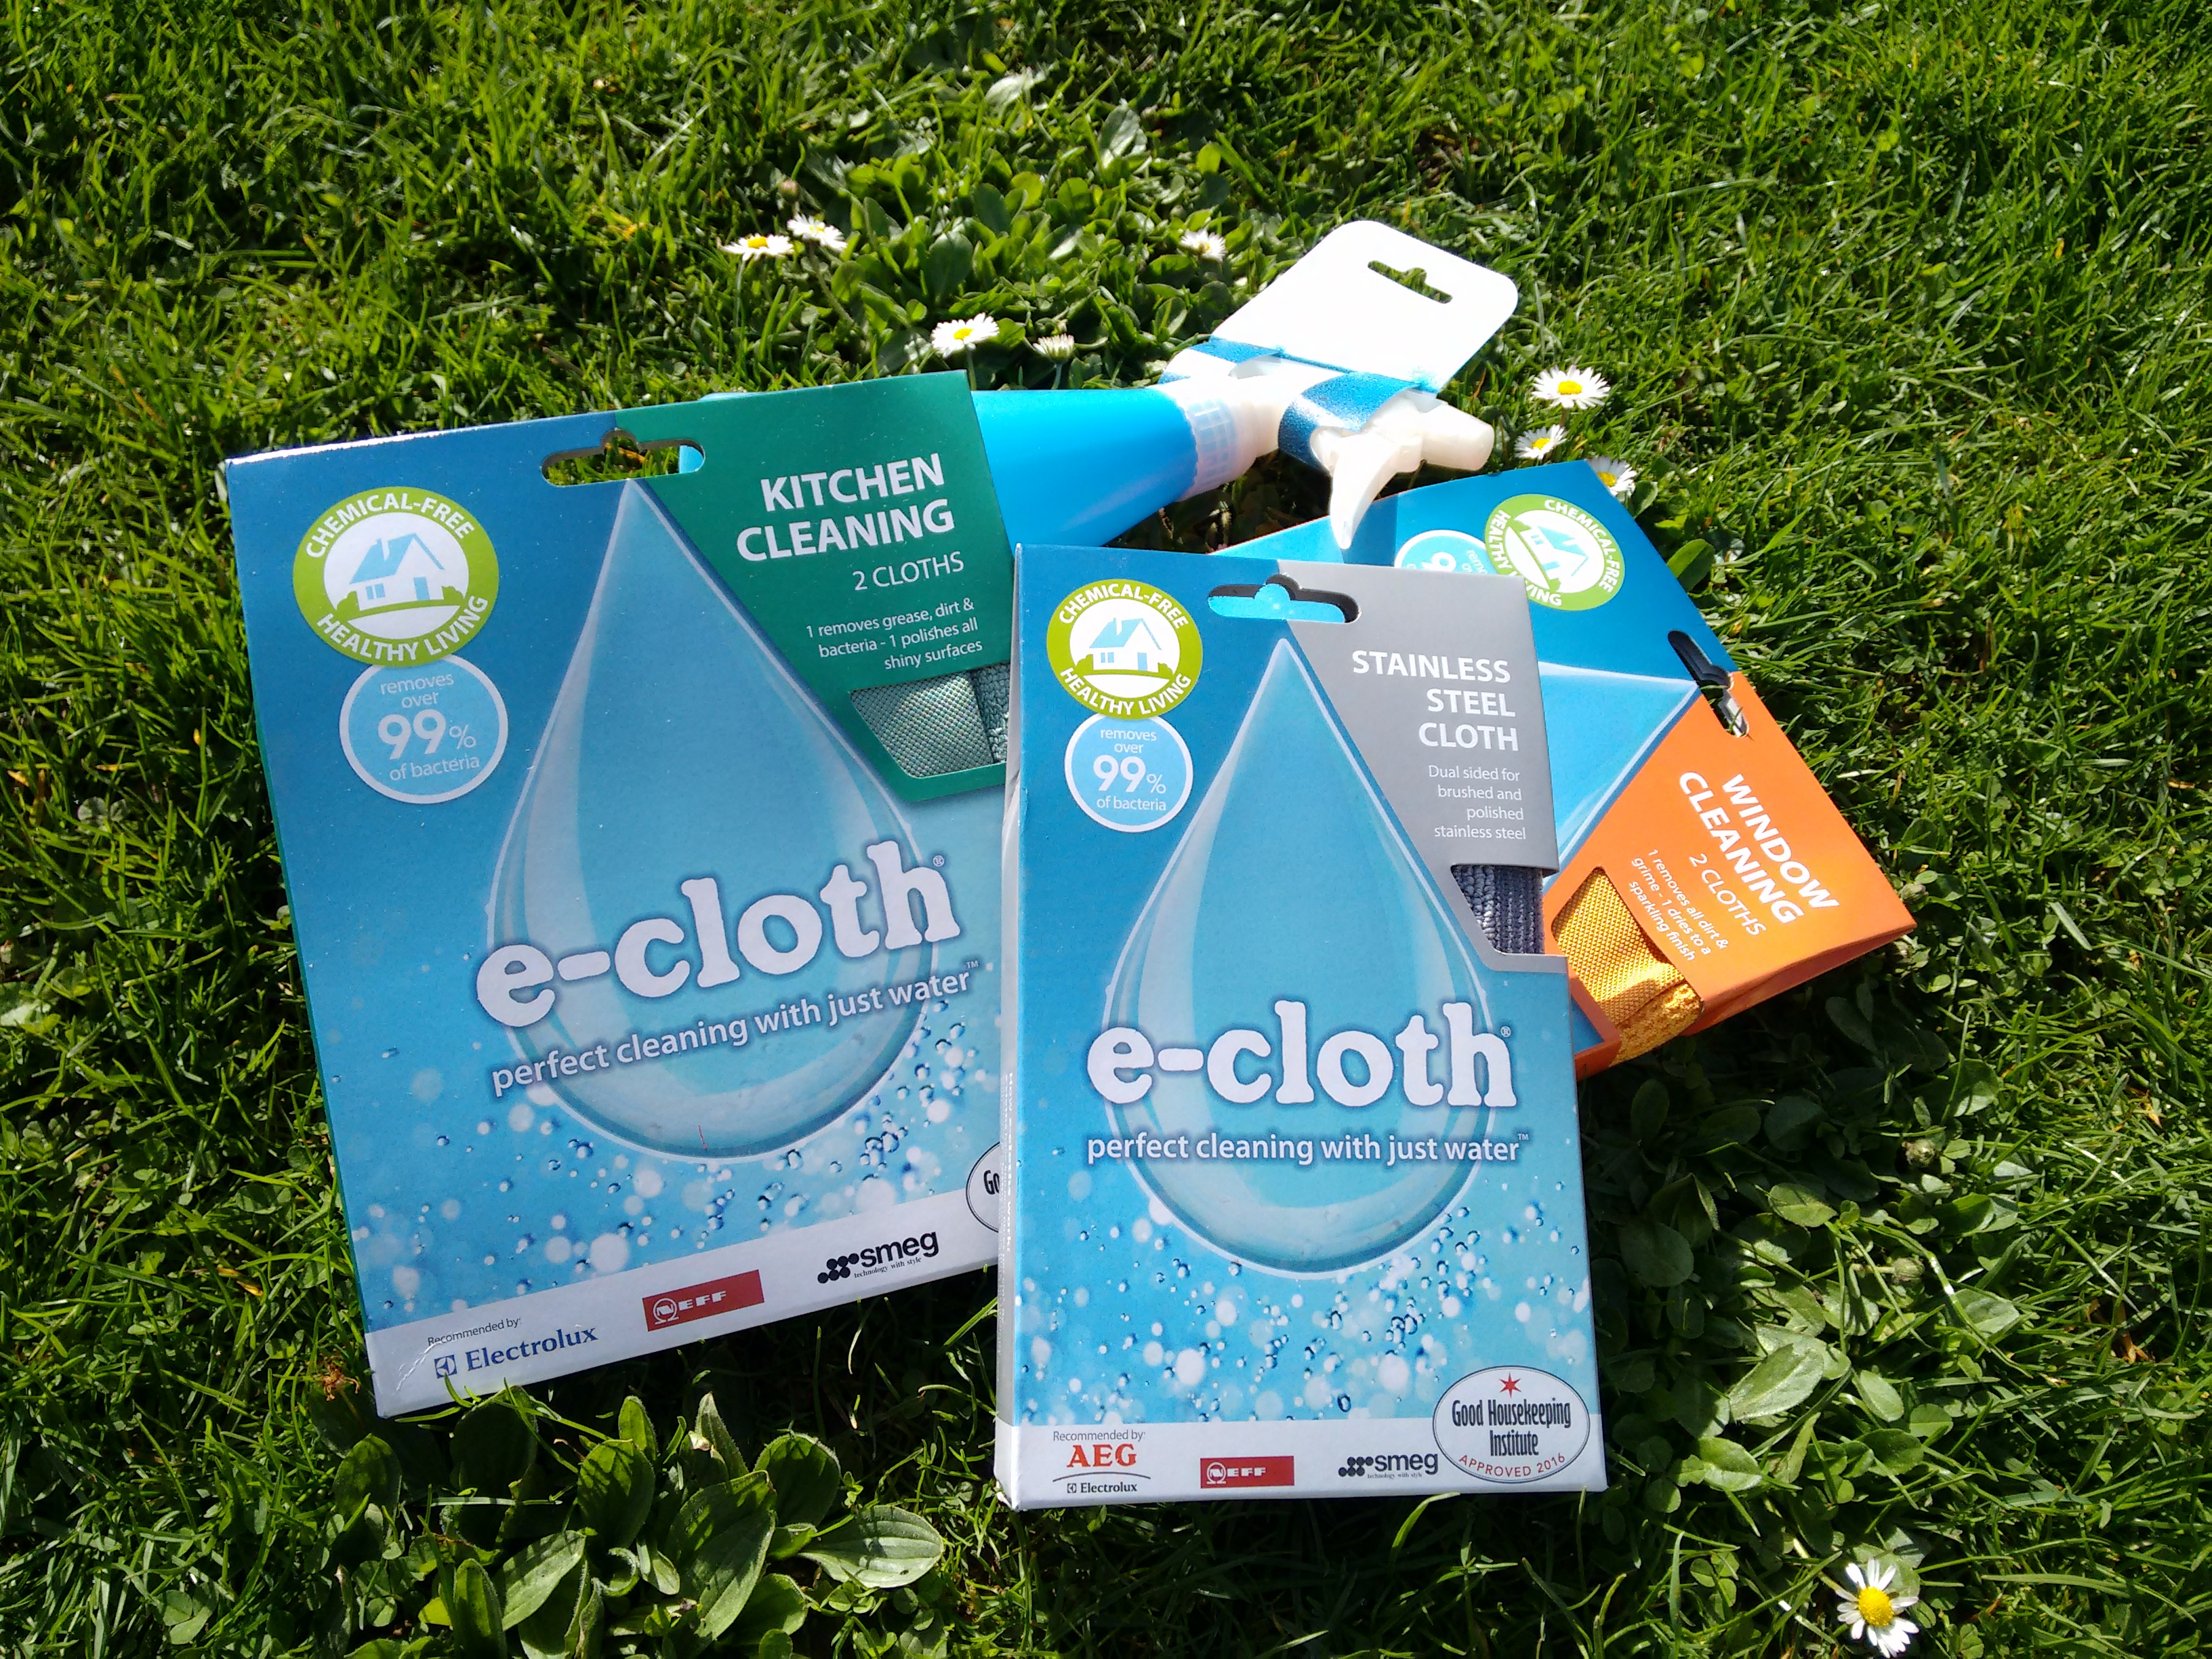 e-cloth green cleaning products